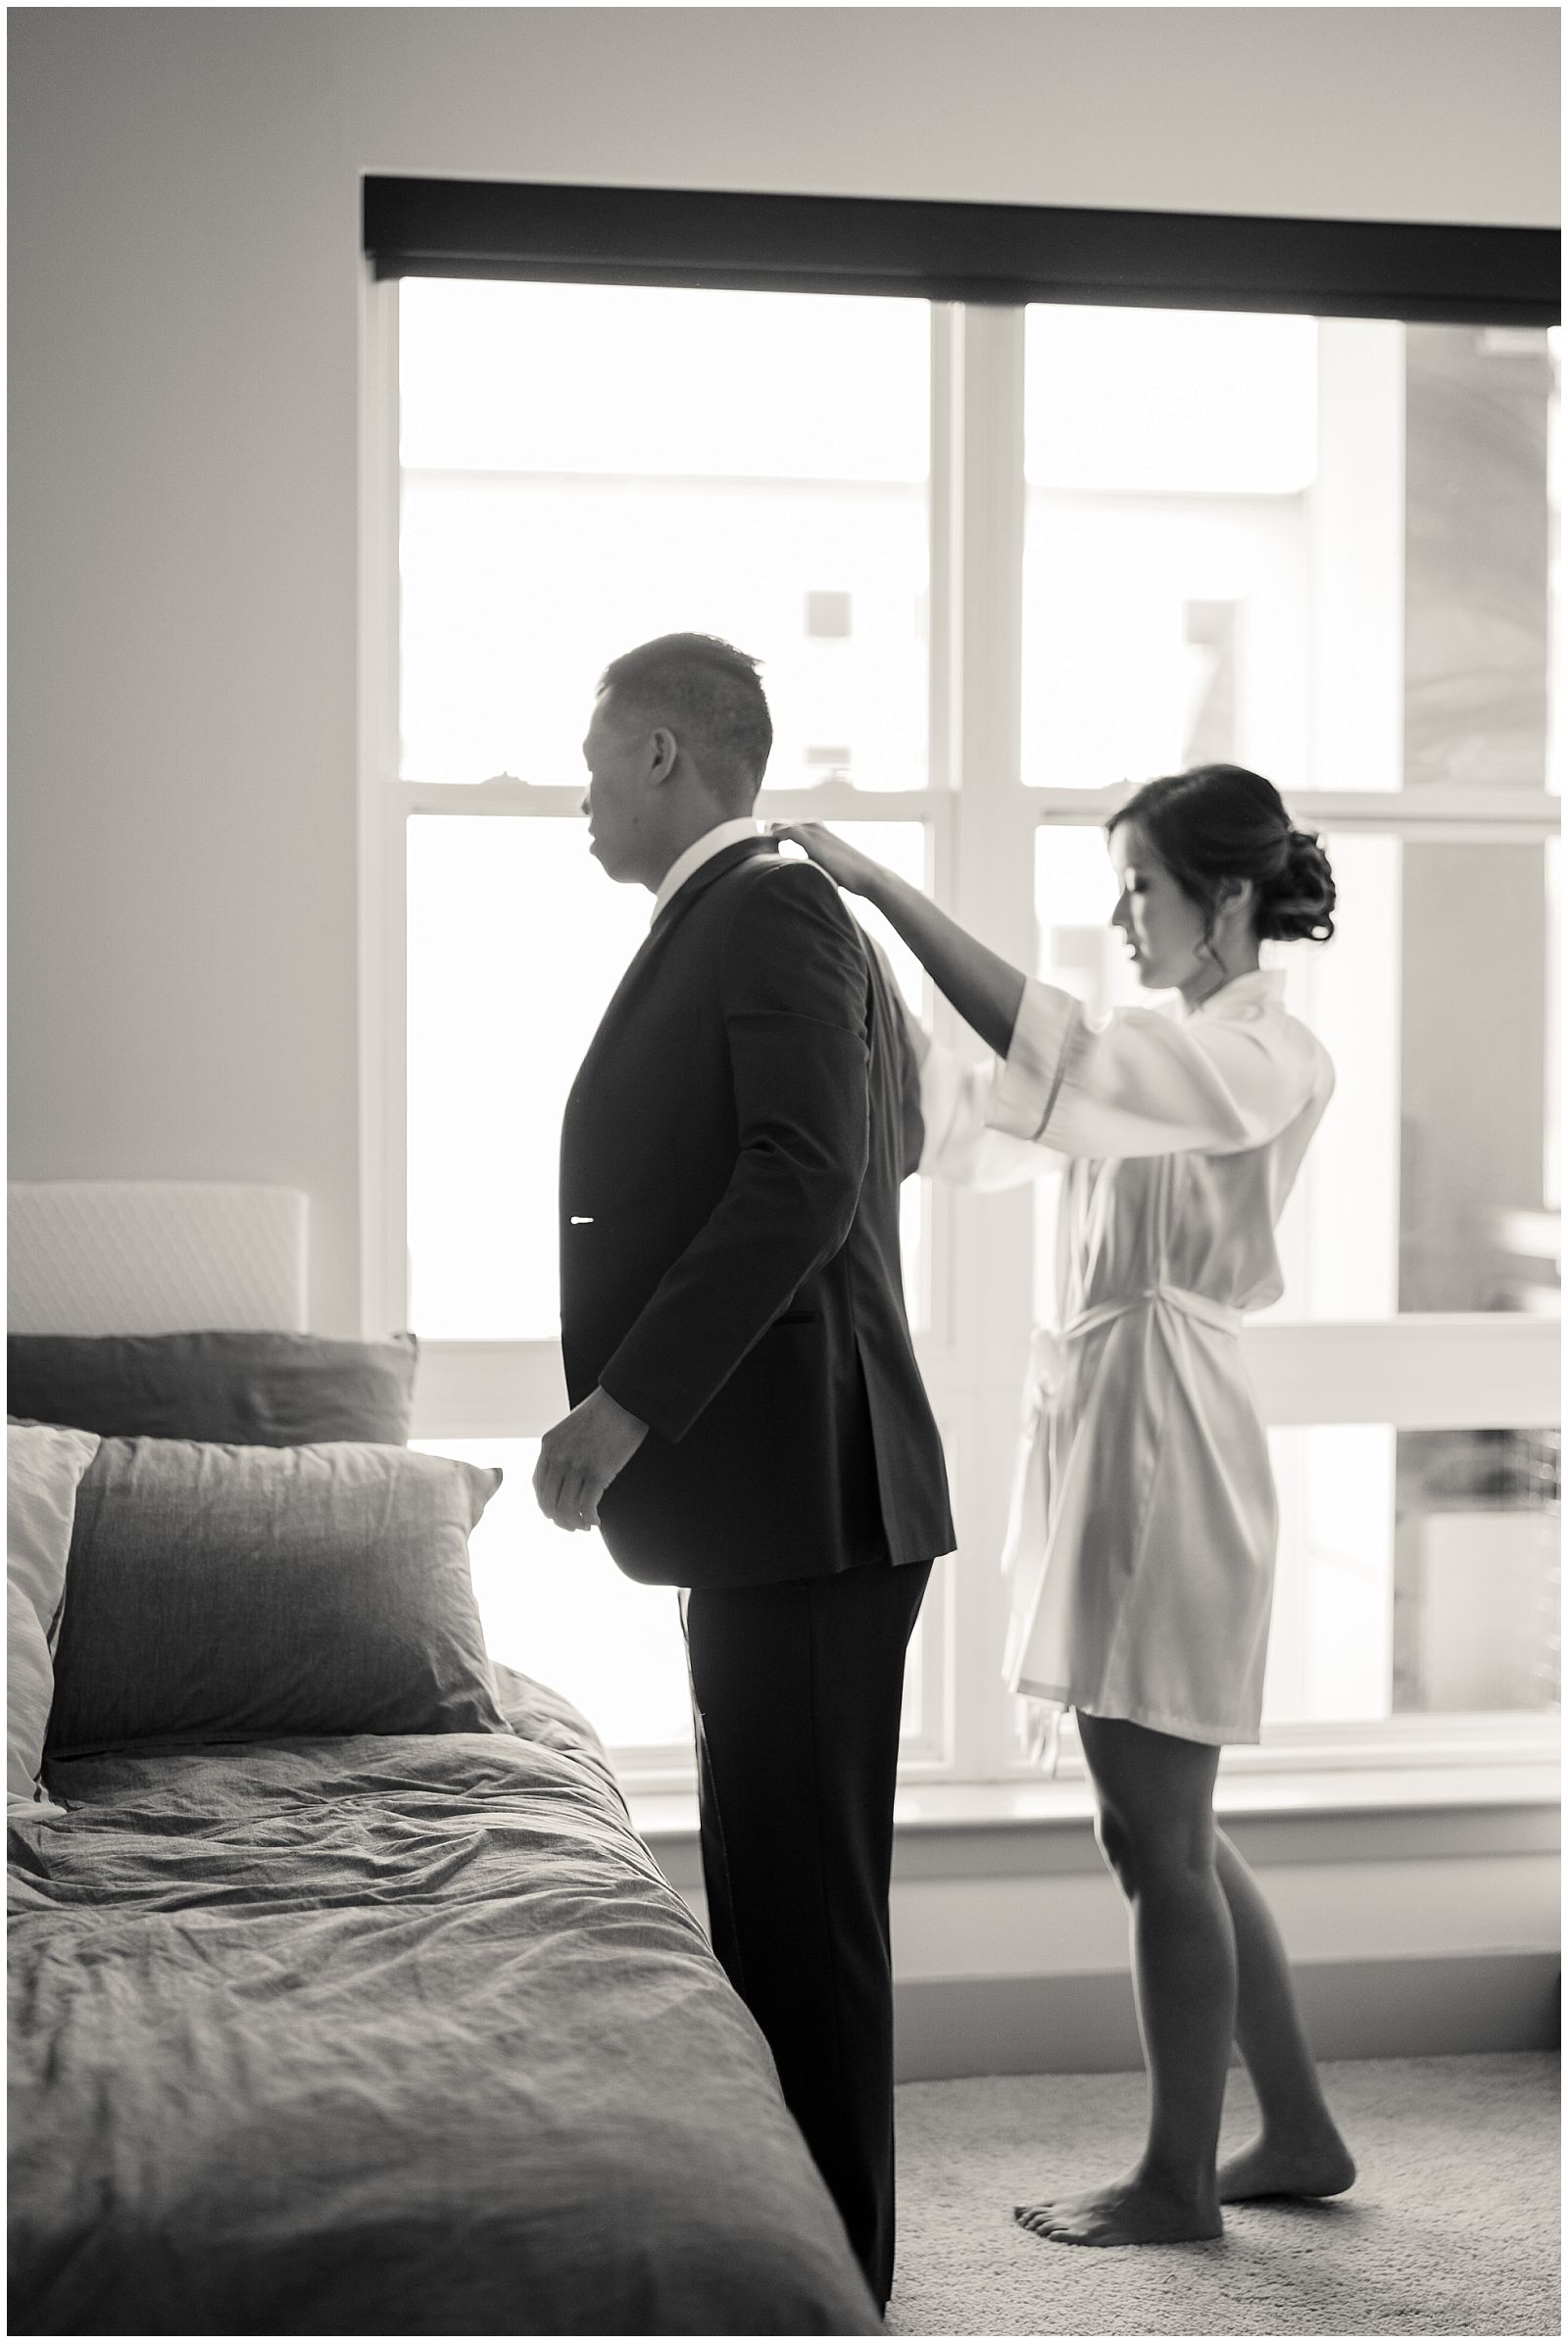 Bride and groom getting ready together on wedding day